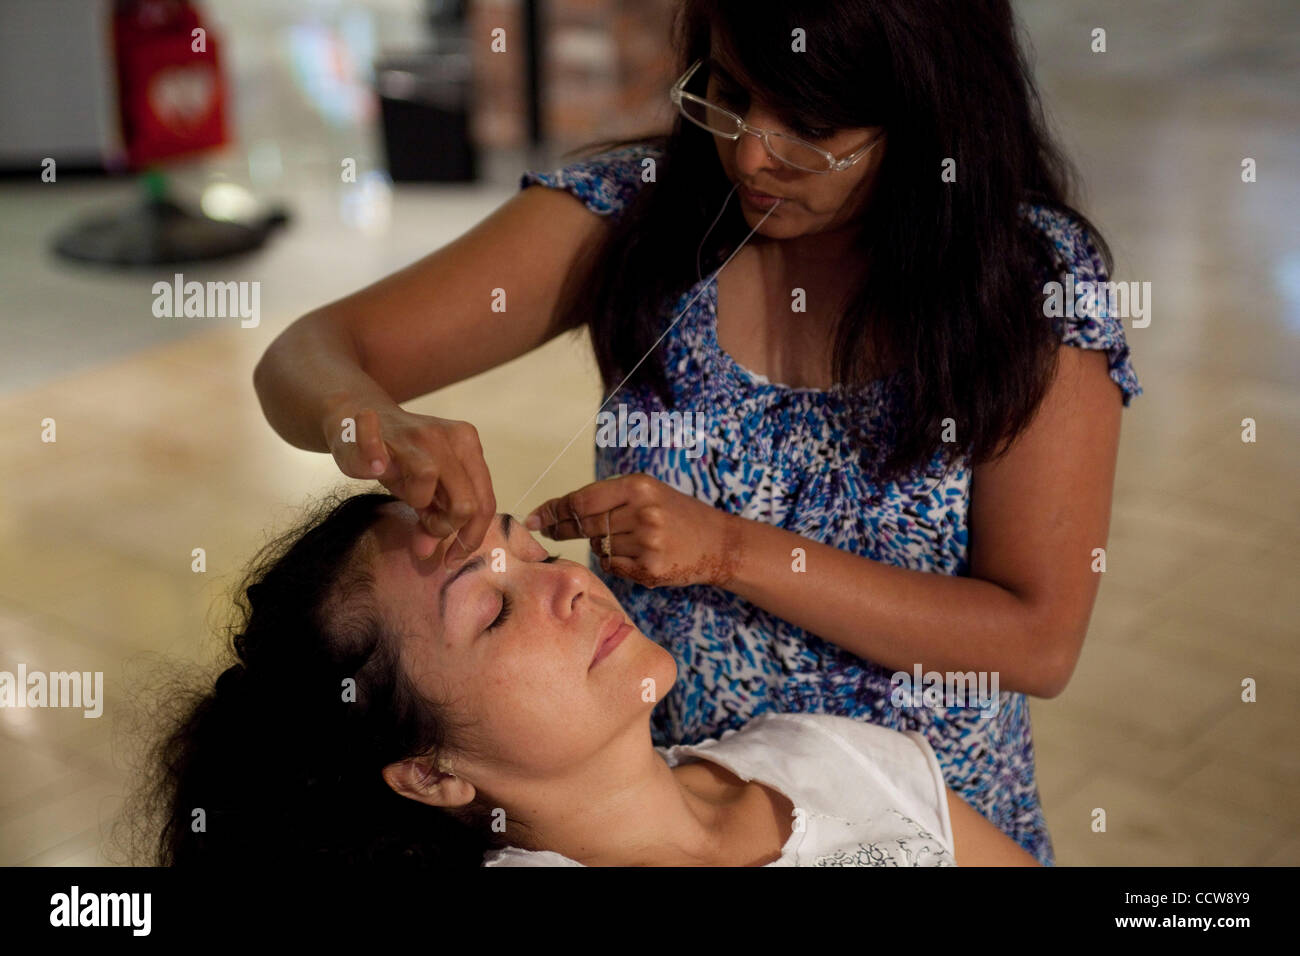 May 30, 2010 - Mission Viejo, California, U.S. - A customer has her eye brows threaded in Mission Viejo shopping - Stock Image